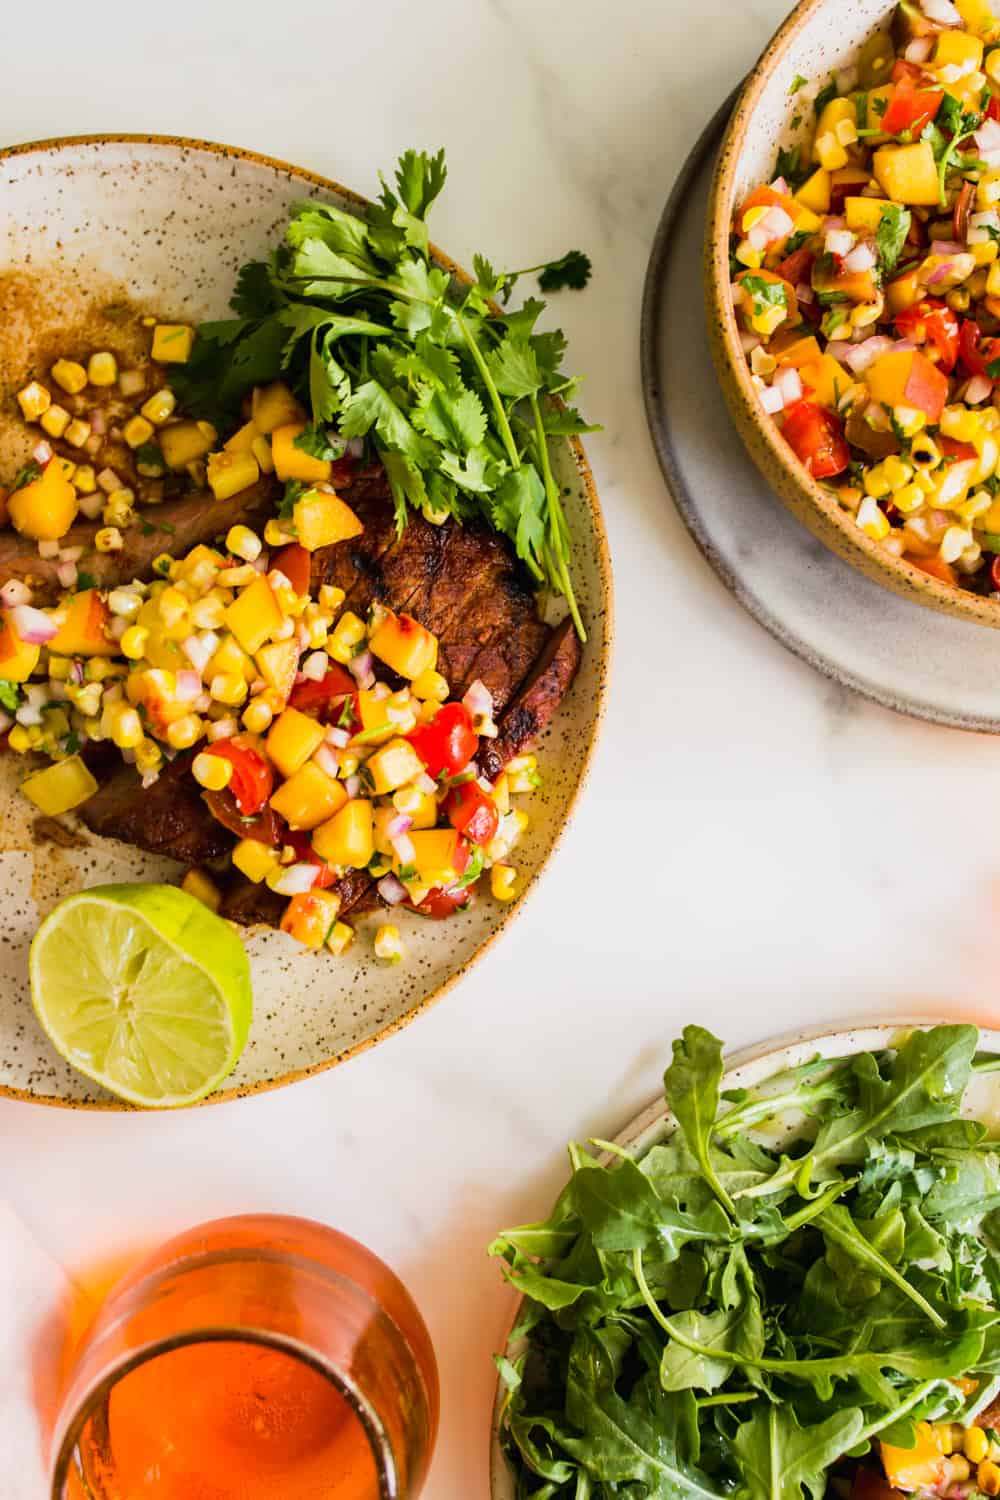 Steak with fruit salsa on top